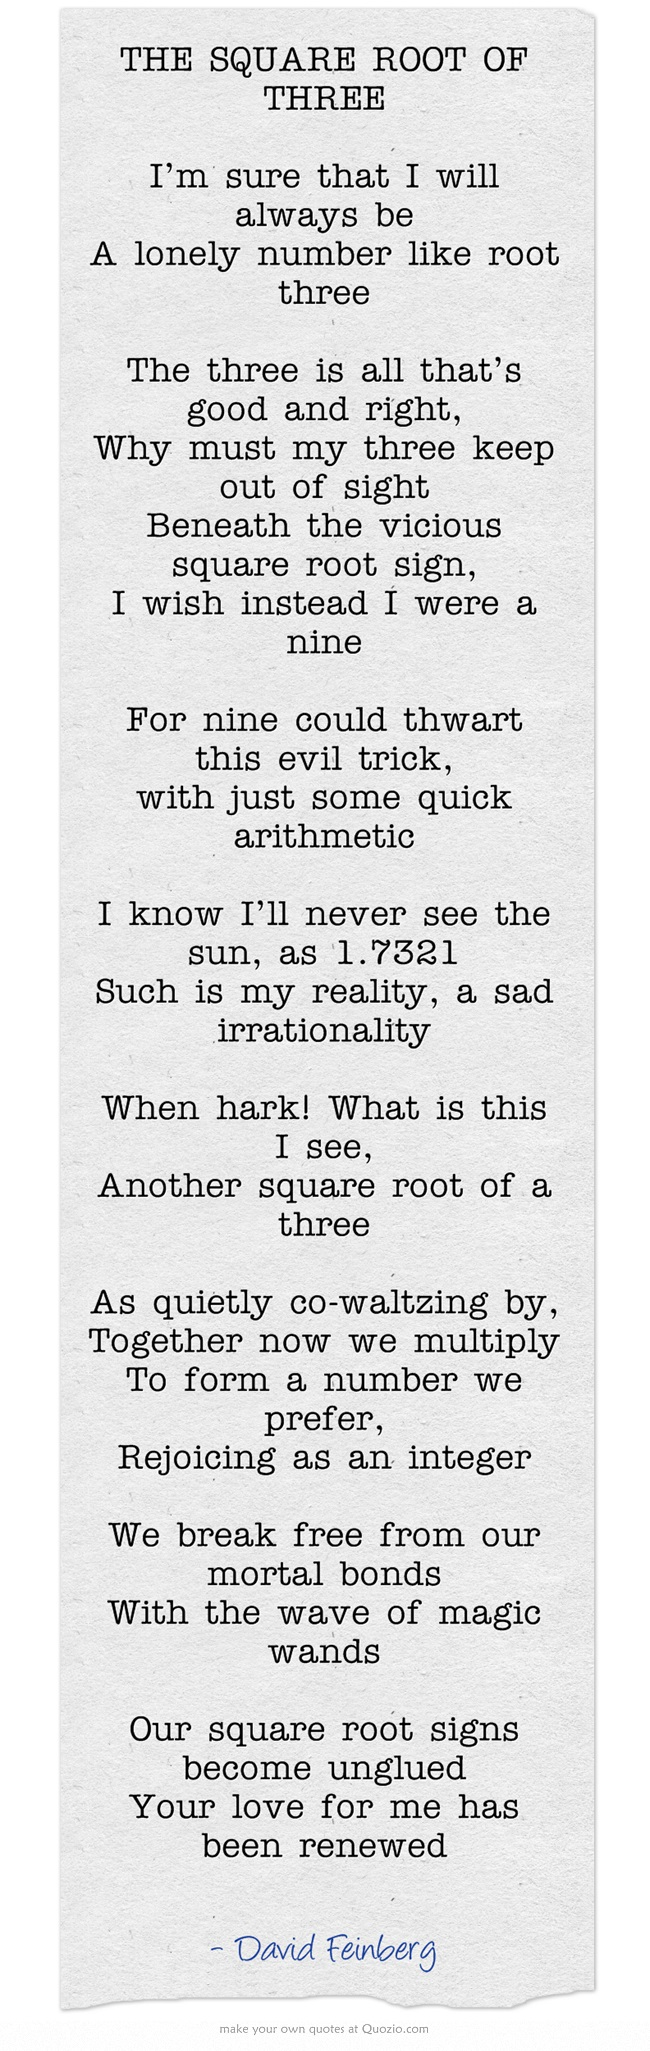 THE SQUARE ROOT OF THREE | Wedding Vows and Readings | Pinterest ...